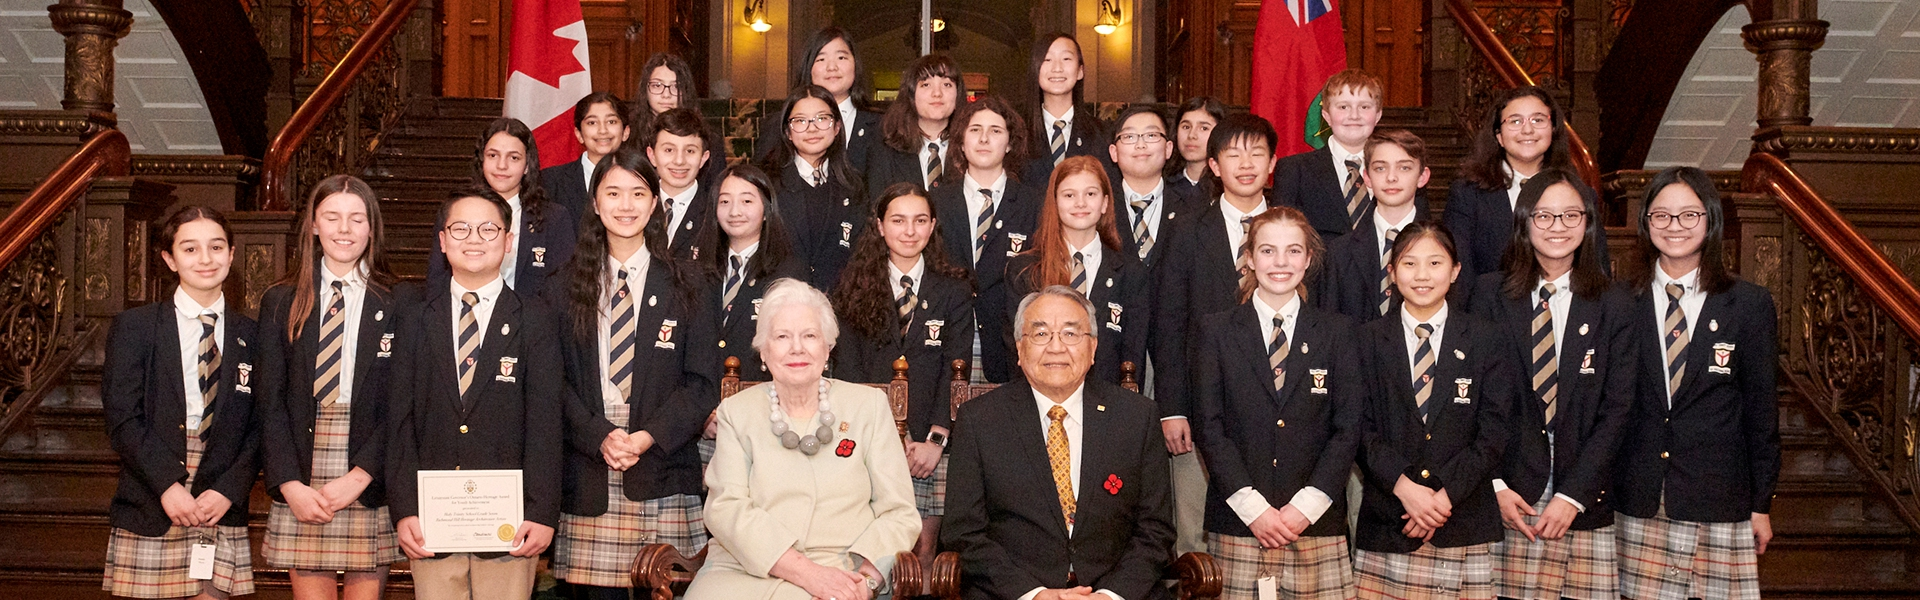 2019 recipients of the Lieutenant Governor's Ontario Heritage Awards